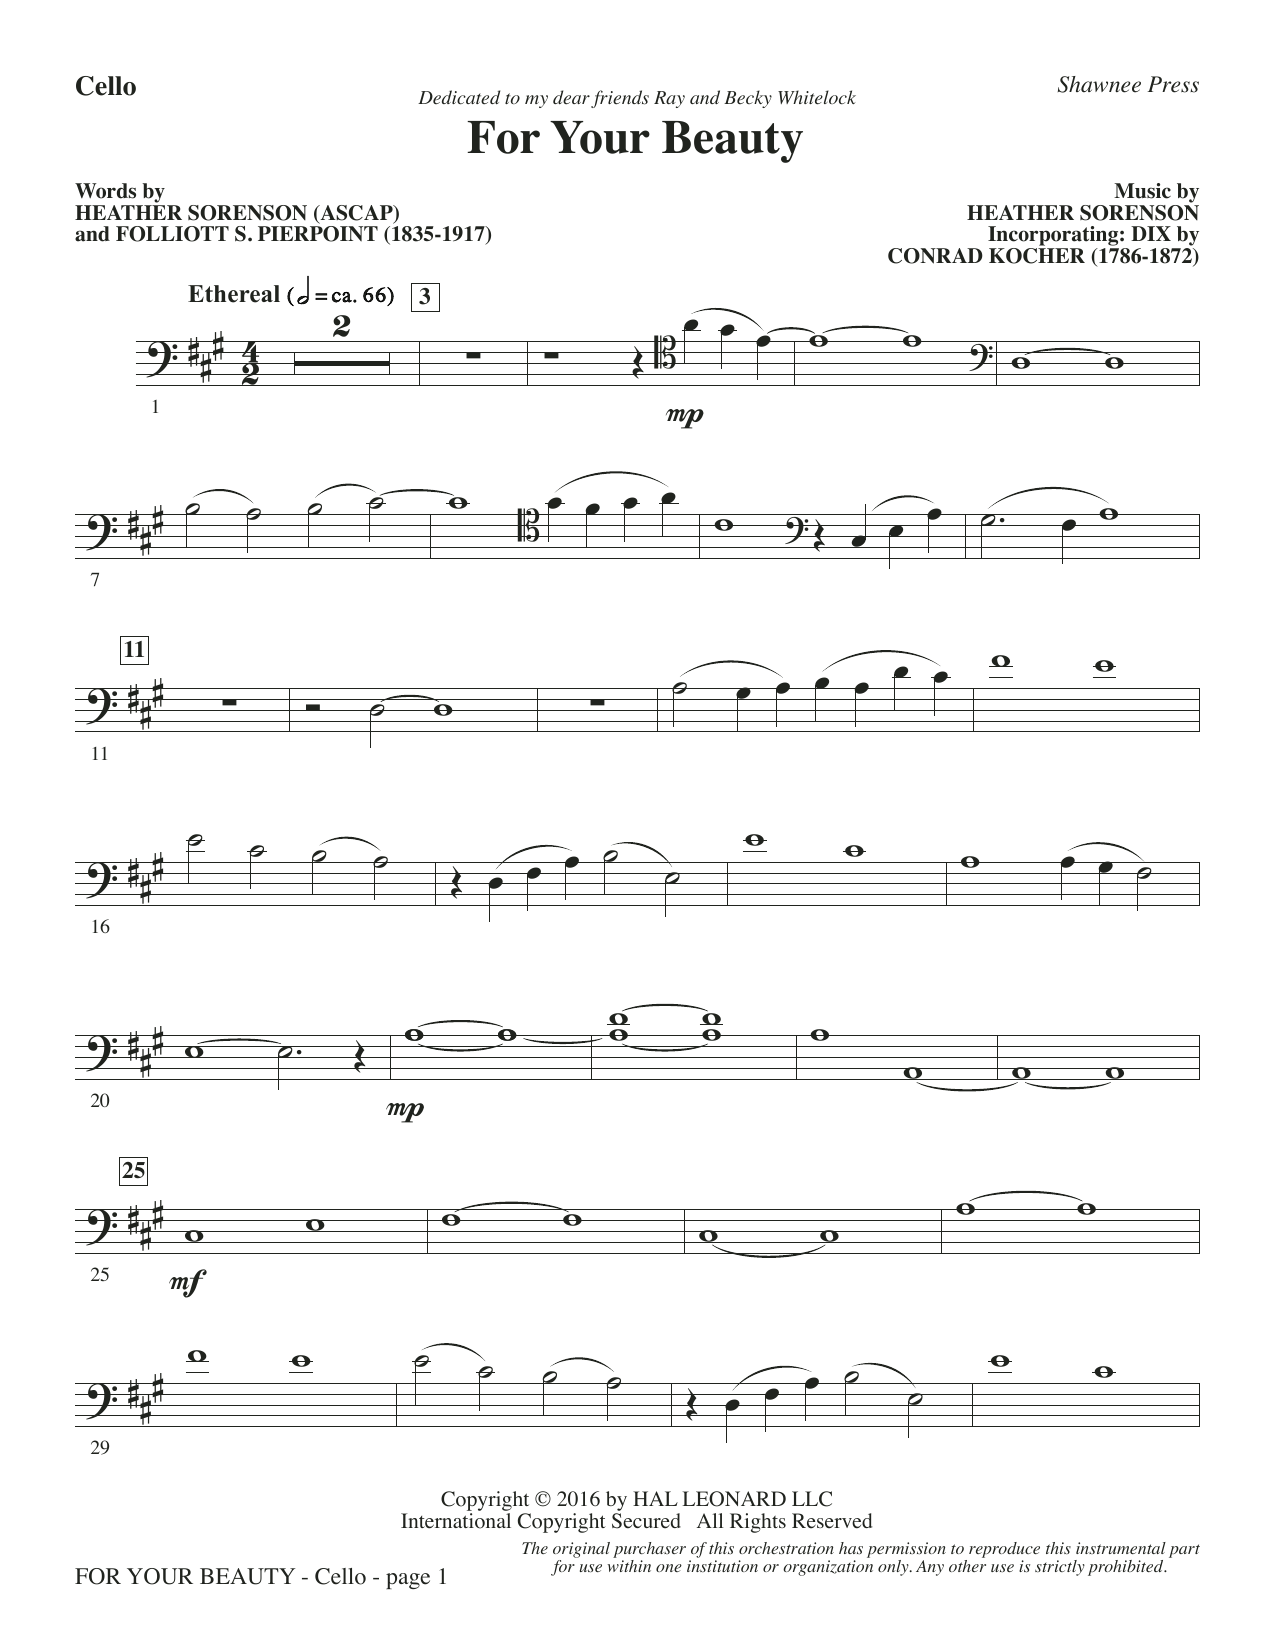 For Your Beauty - Cello Sheet Music